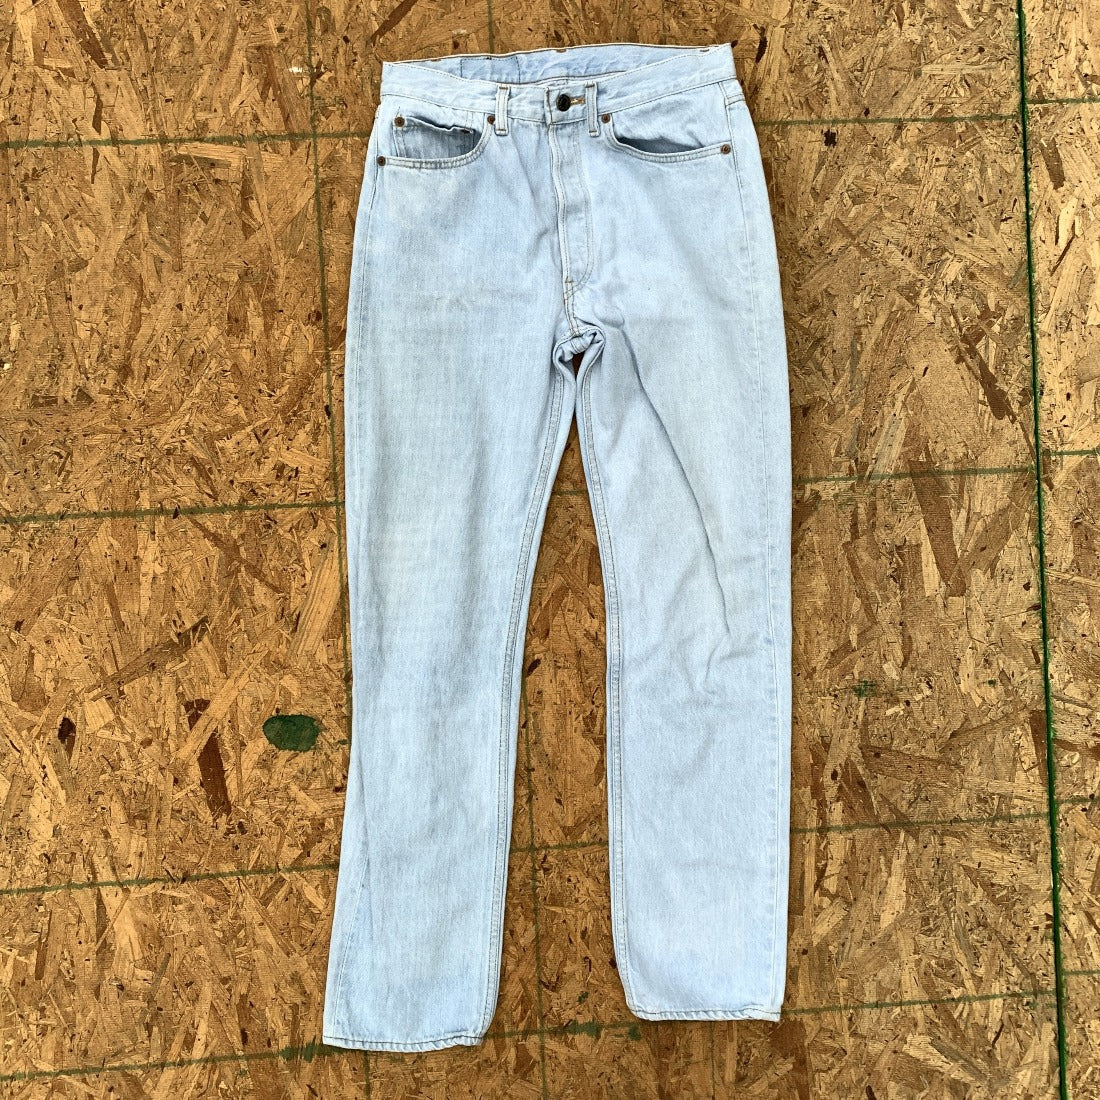 Levi's 501 Bleach Wash | 32 x 34